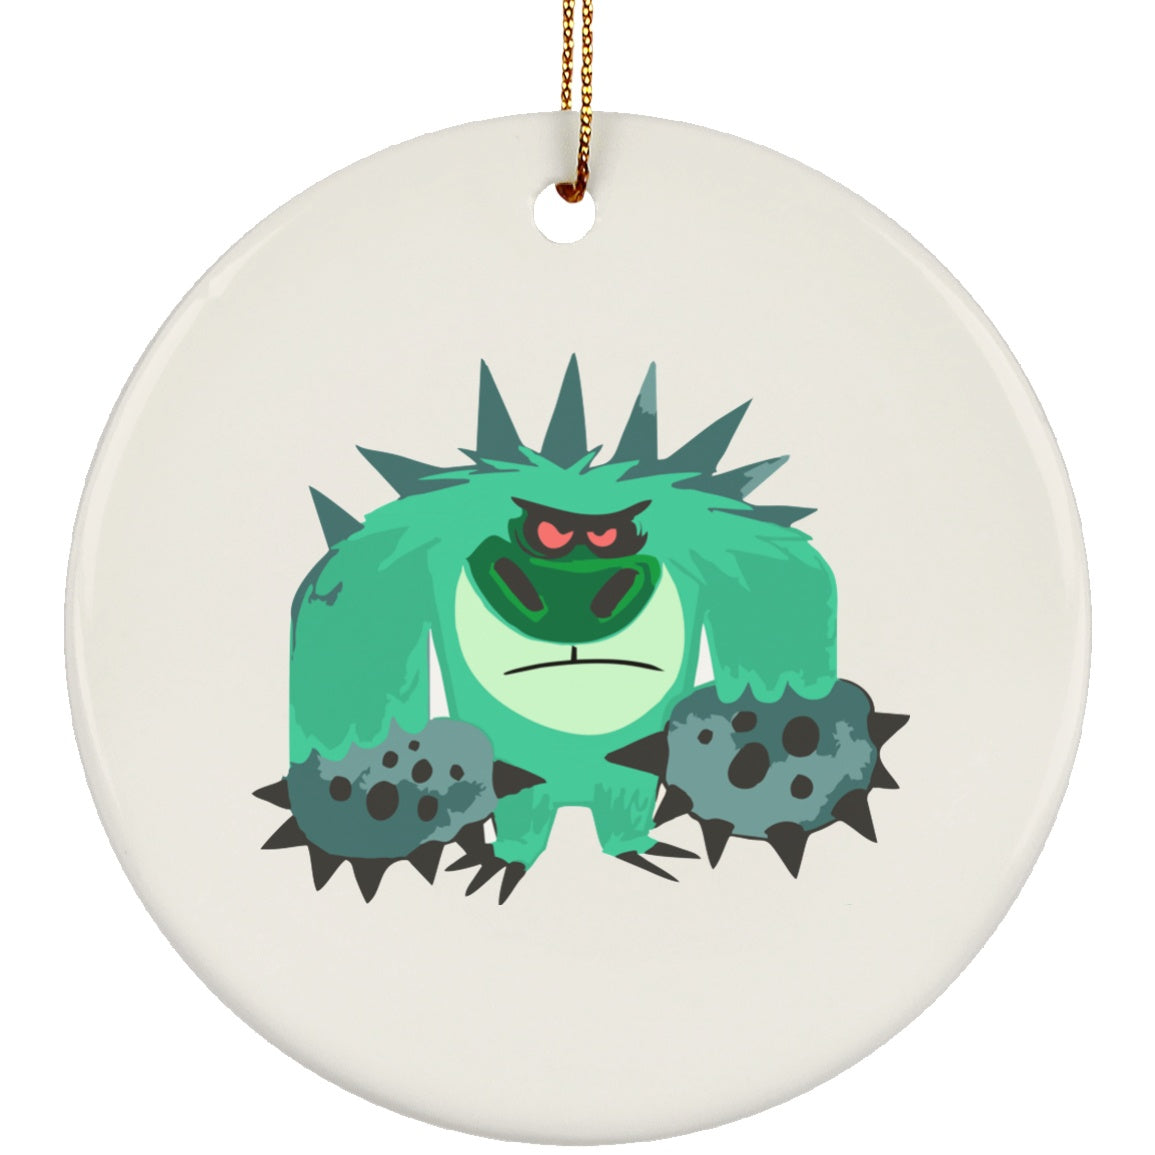 Trigeminal Neuralgia Monster Circle Ornament - The Unchargeables